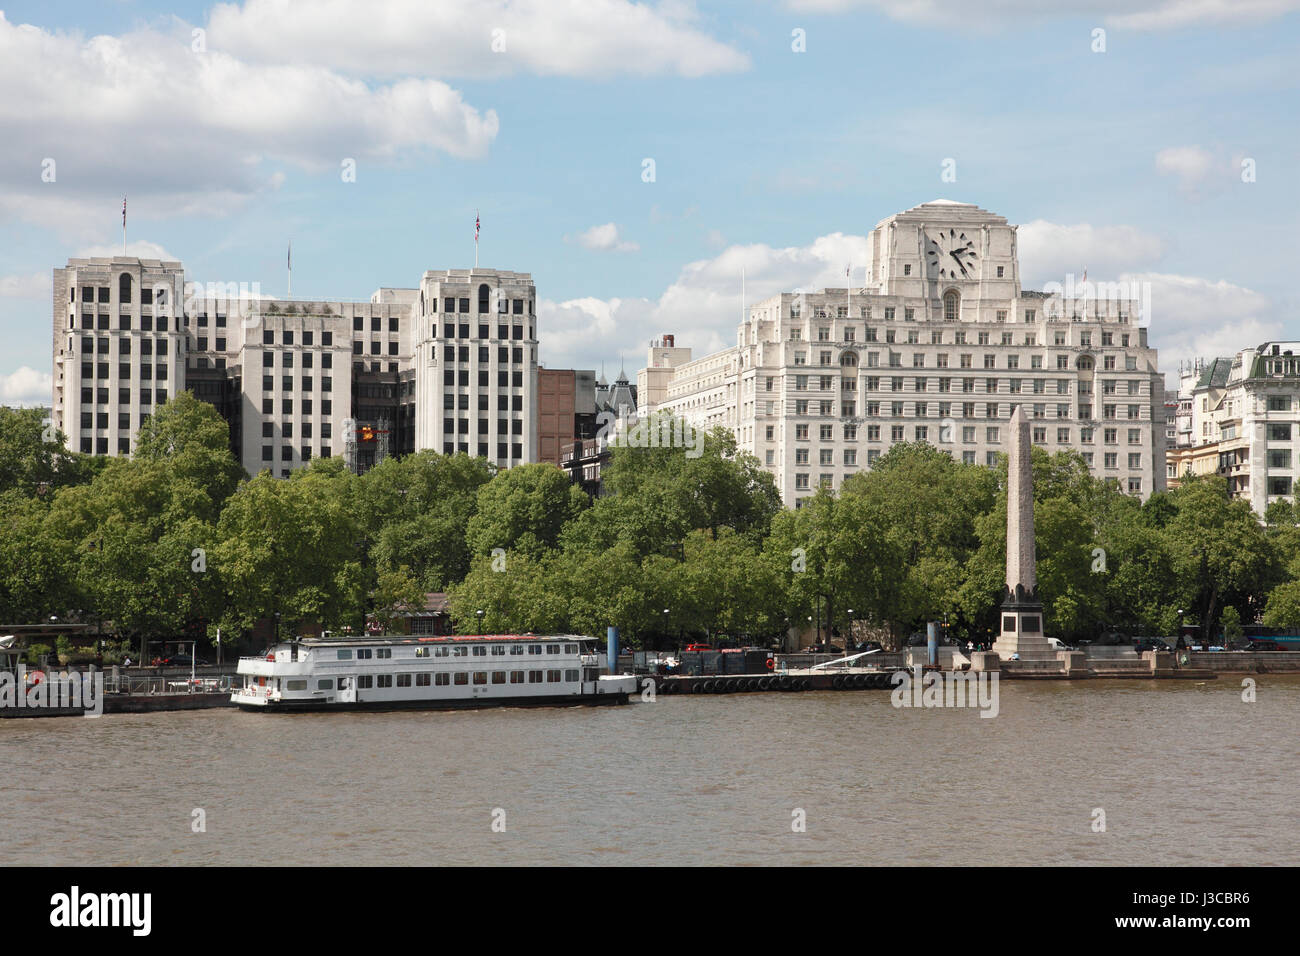 The Adelphi Hotel, the Shell Mex building and Cleopatra's Needle on the Victoria Embankment of the river Thames, - Stock Image